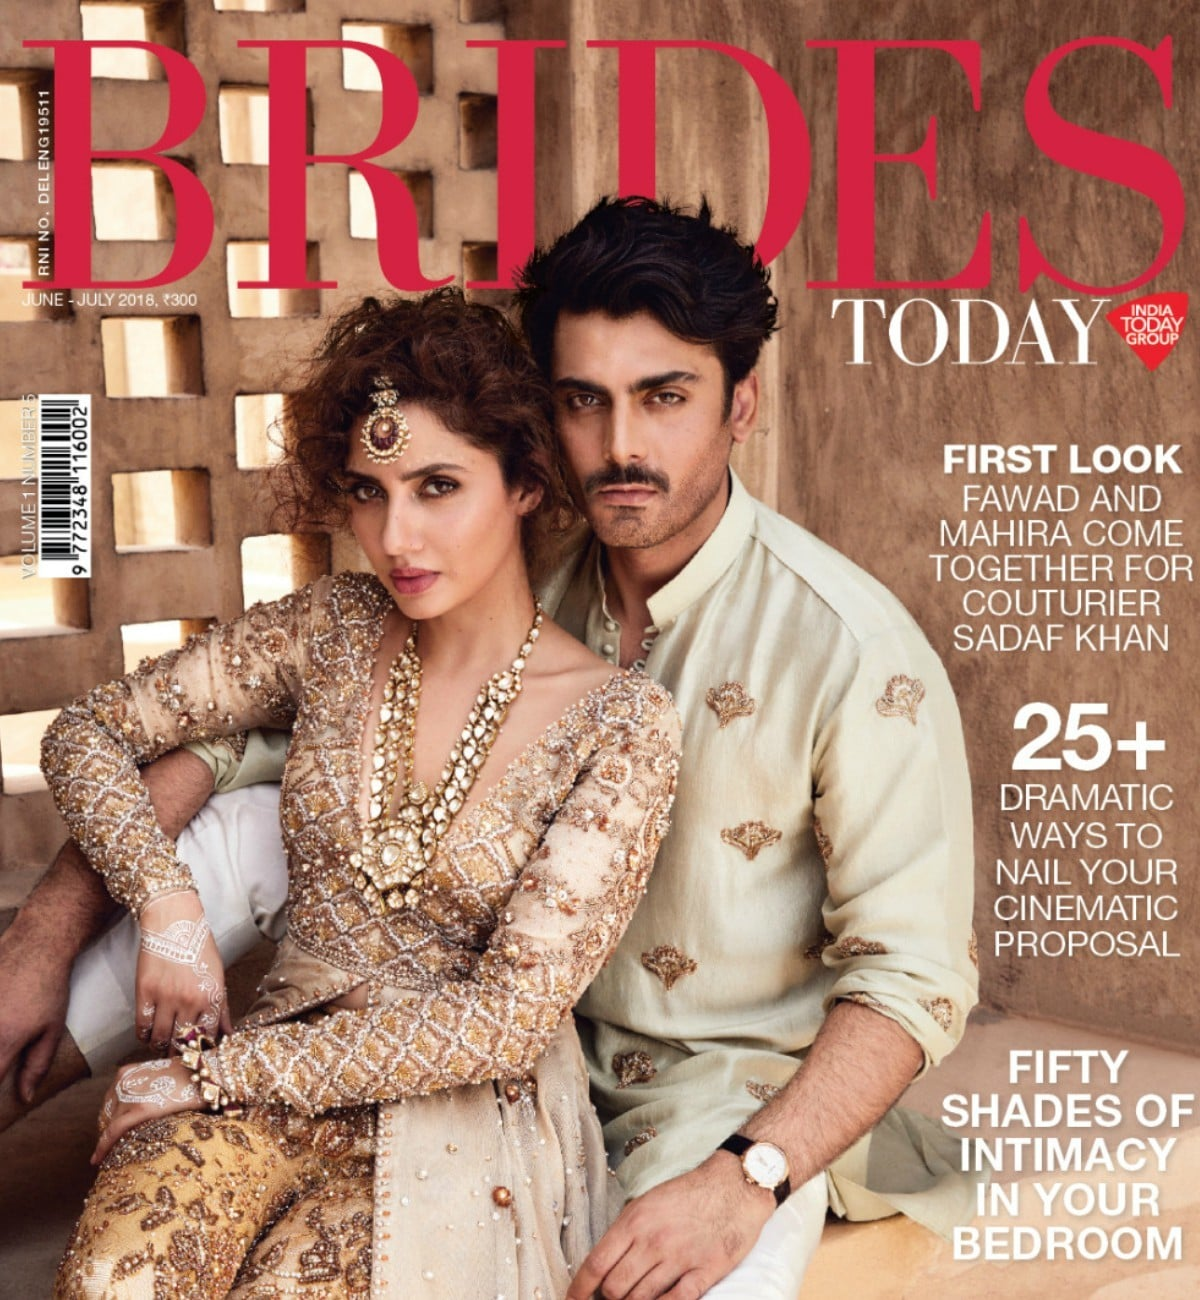 Mahira And Fawad Are Back In India... On This Sizzling